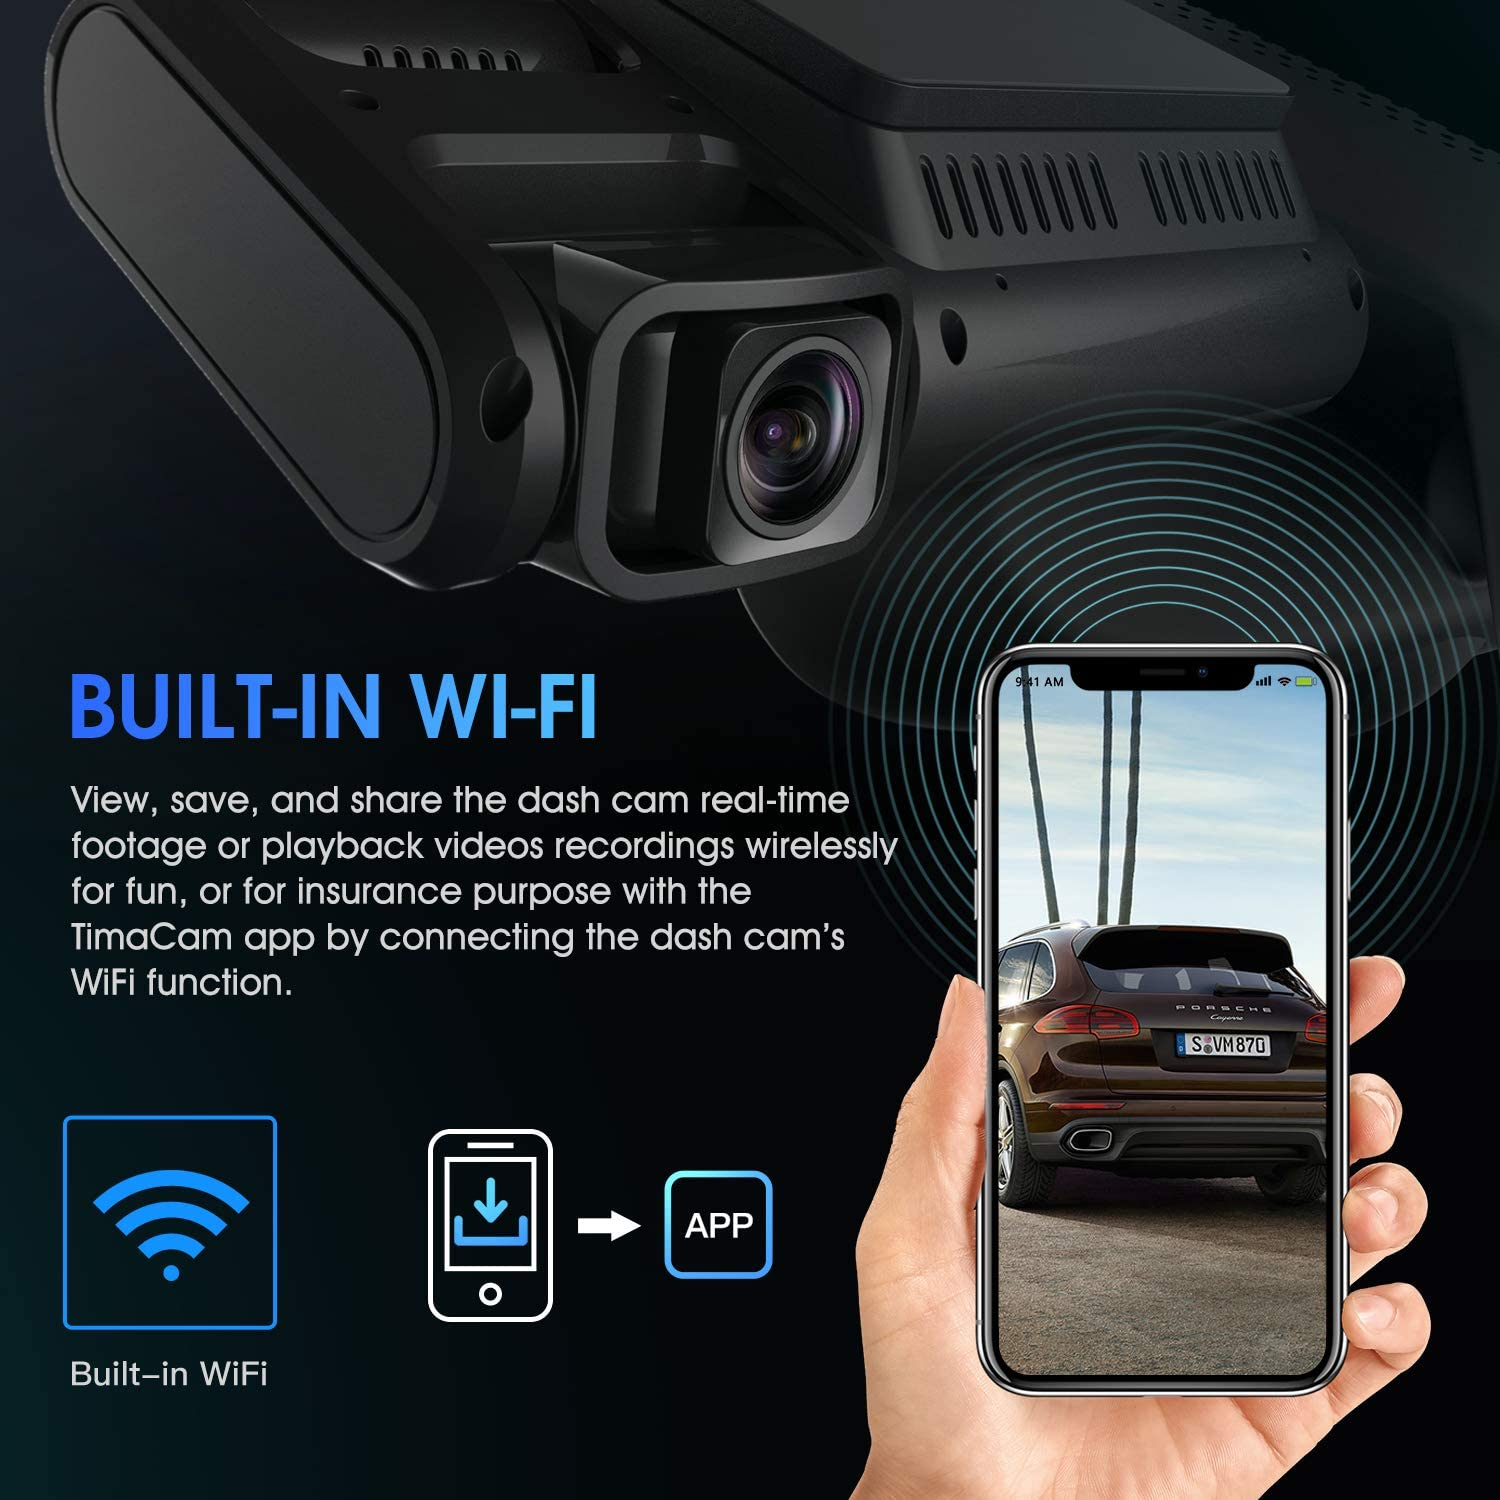 G-Sensor WiFi Loop Recording Pruveeo D40 Three and Dual Channel Dash Cam 3.0 inch LCD Night Vision Front Inside and Rear with Backup Camera Dash Camera for Cars Supercapacitor